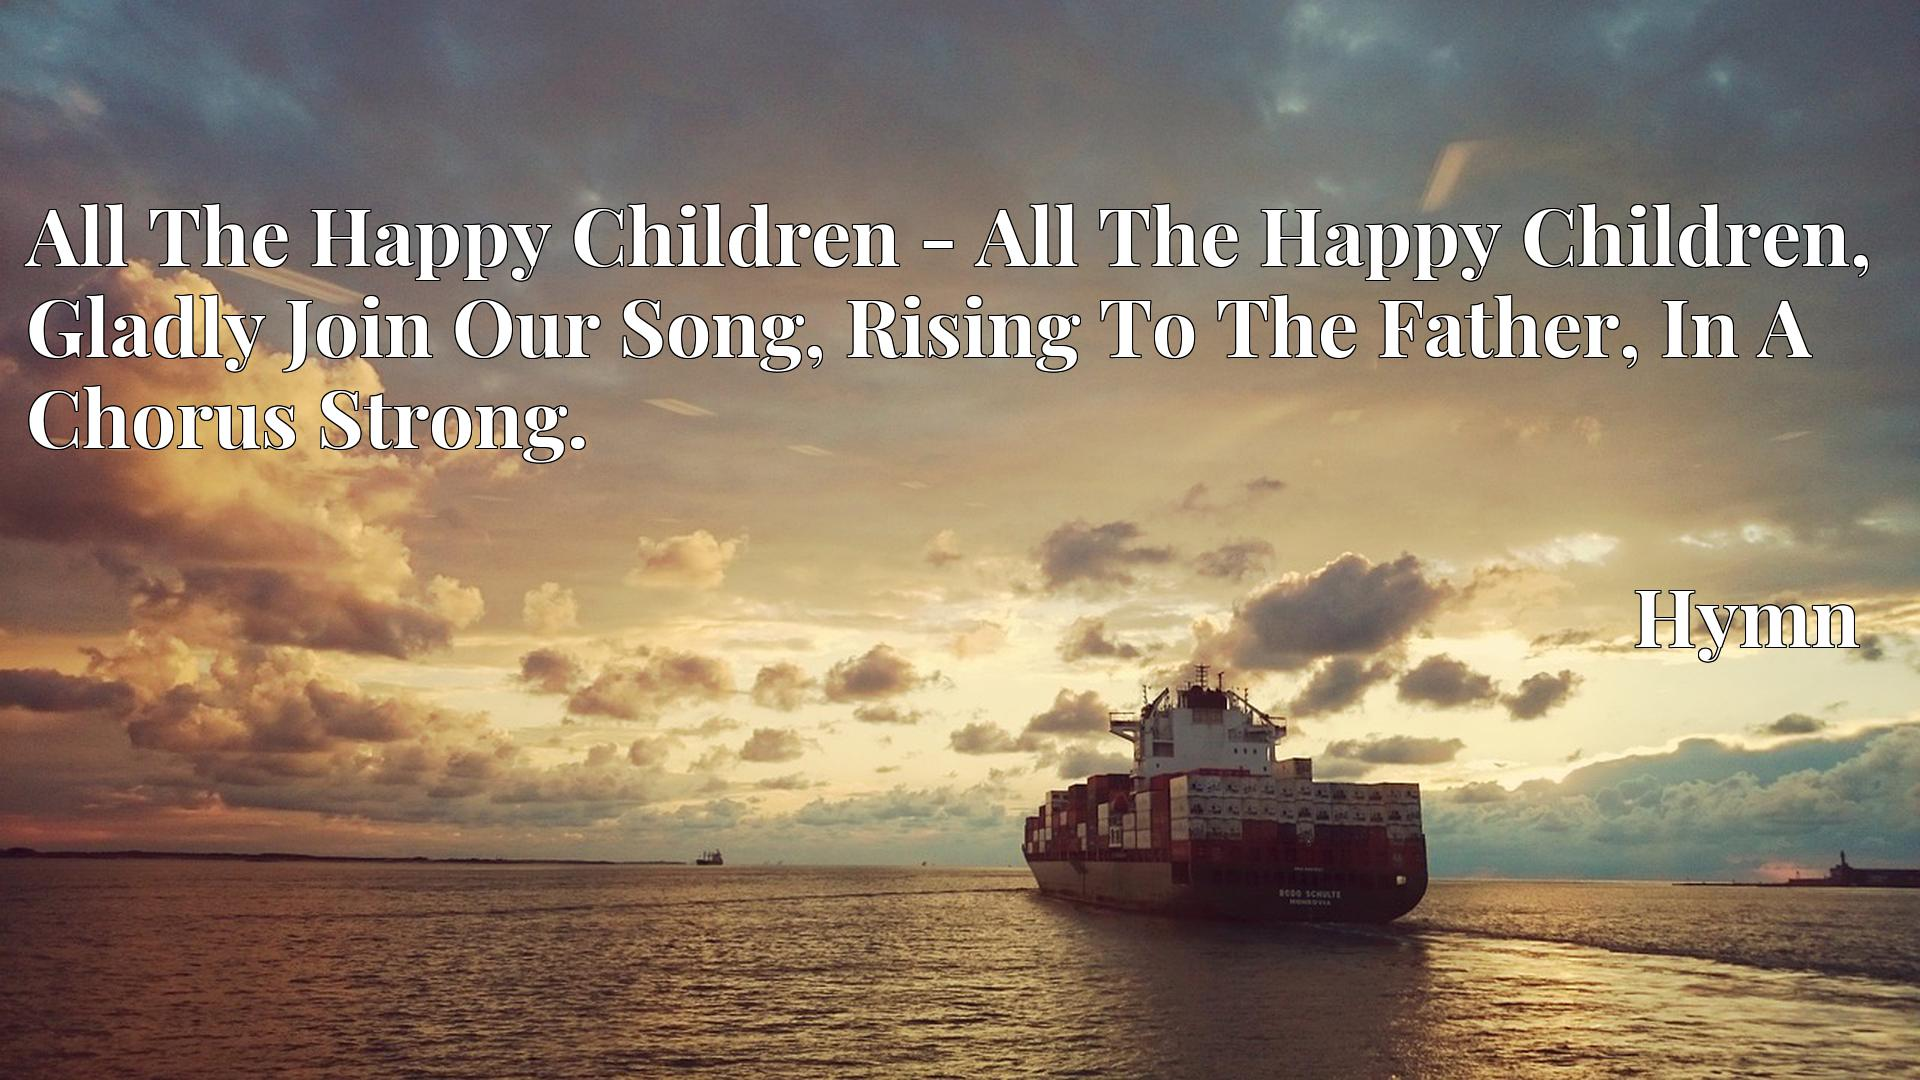 All The Happy Children - All The Happy Children, Gladly Join Our Song, Rising To The Father, In A Chorus Strong. - Hymn